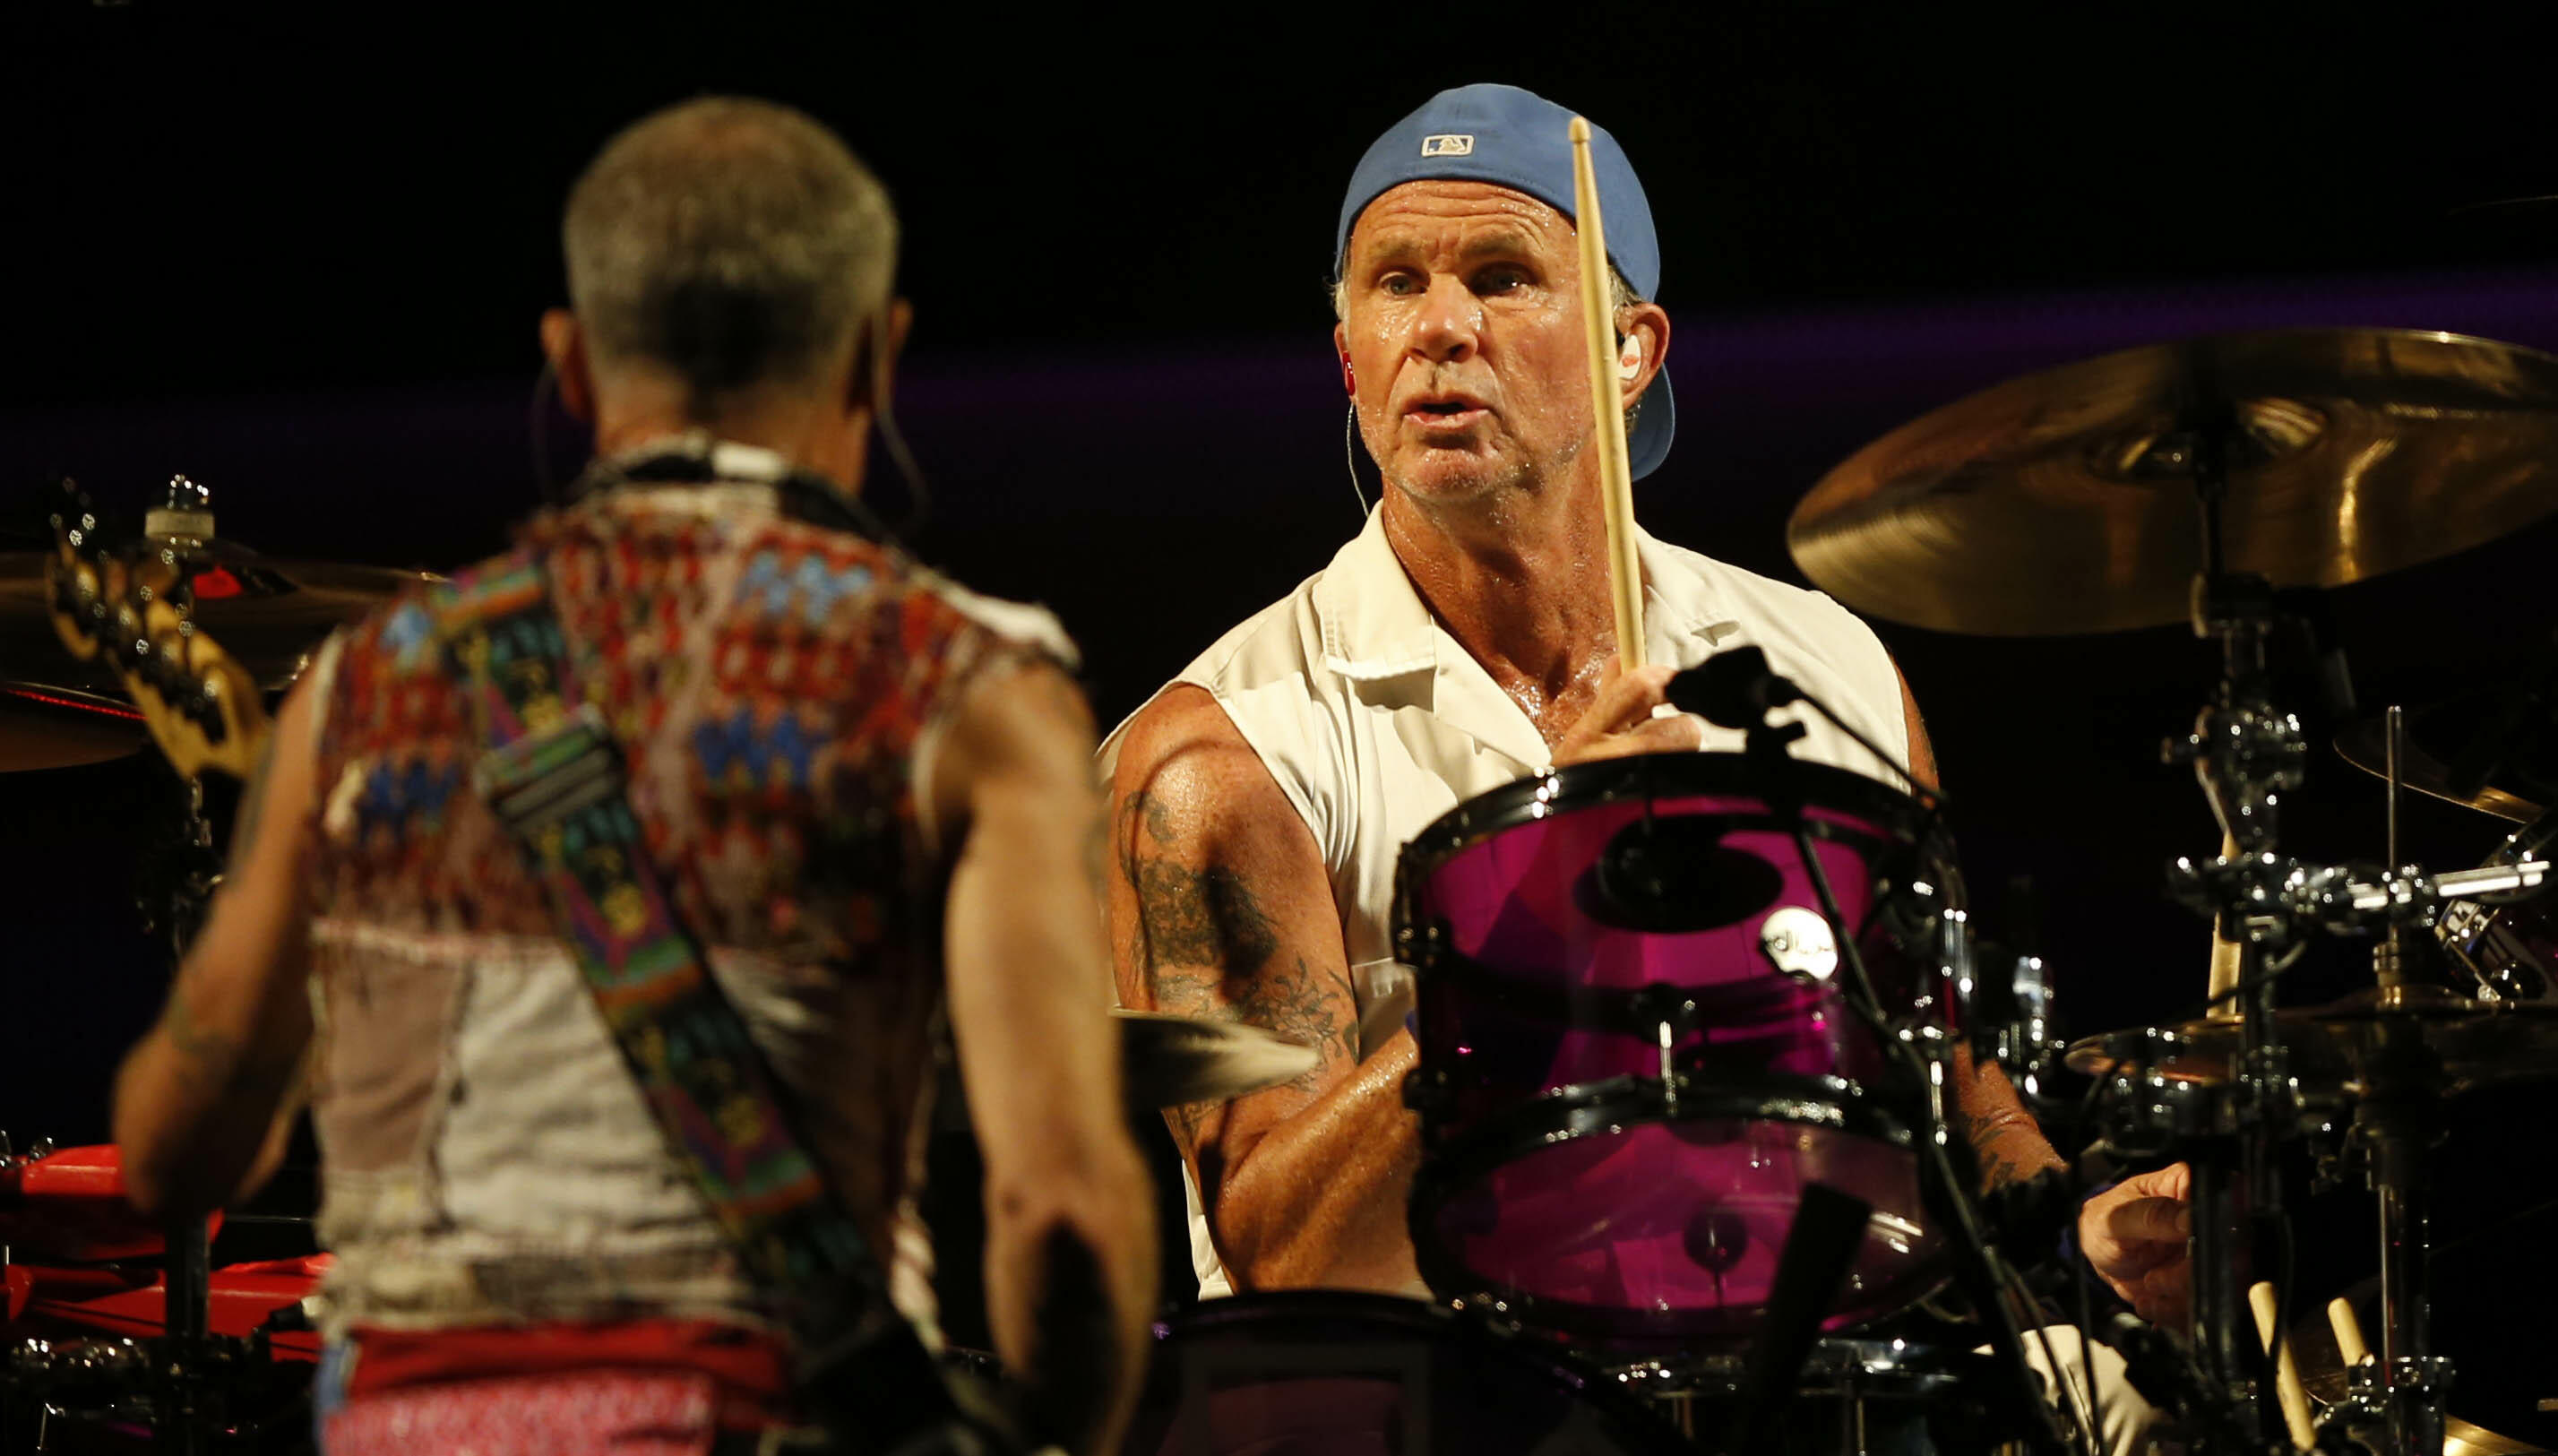 Chad Smith Confirms New Red Hot Chili Peppers Album Is Coming